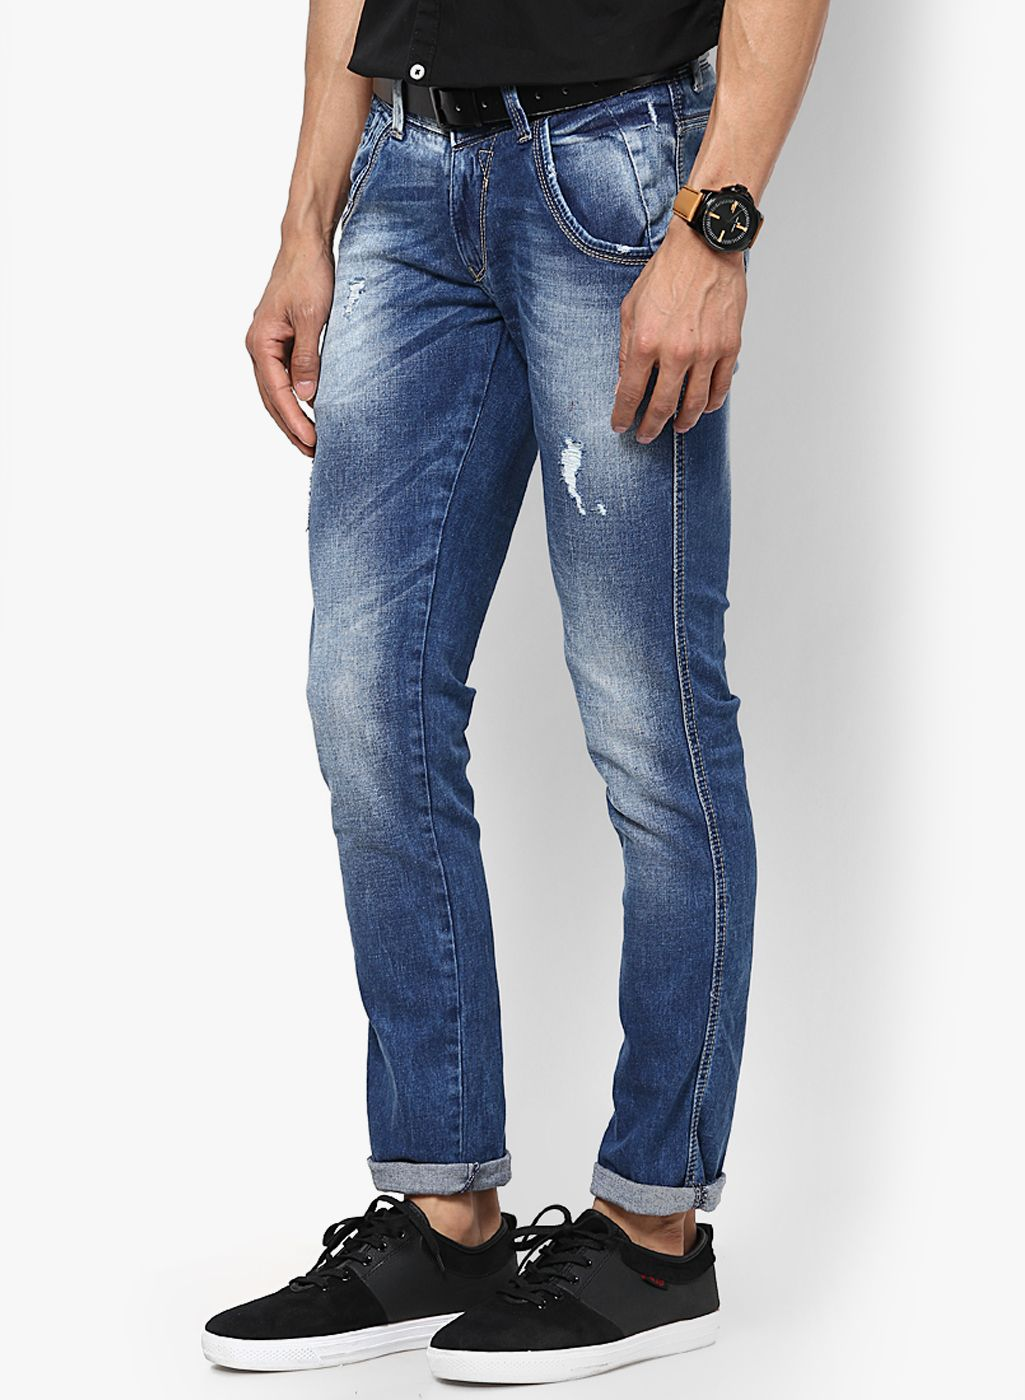 e7dbfca4 Buy Spykar Blue Skinny Fit Jeans for Men Online India, Best Prices, Reviews  | SP116MA02FFTINDFAS